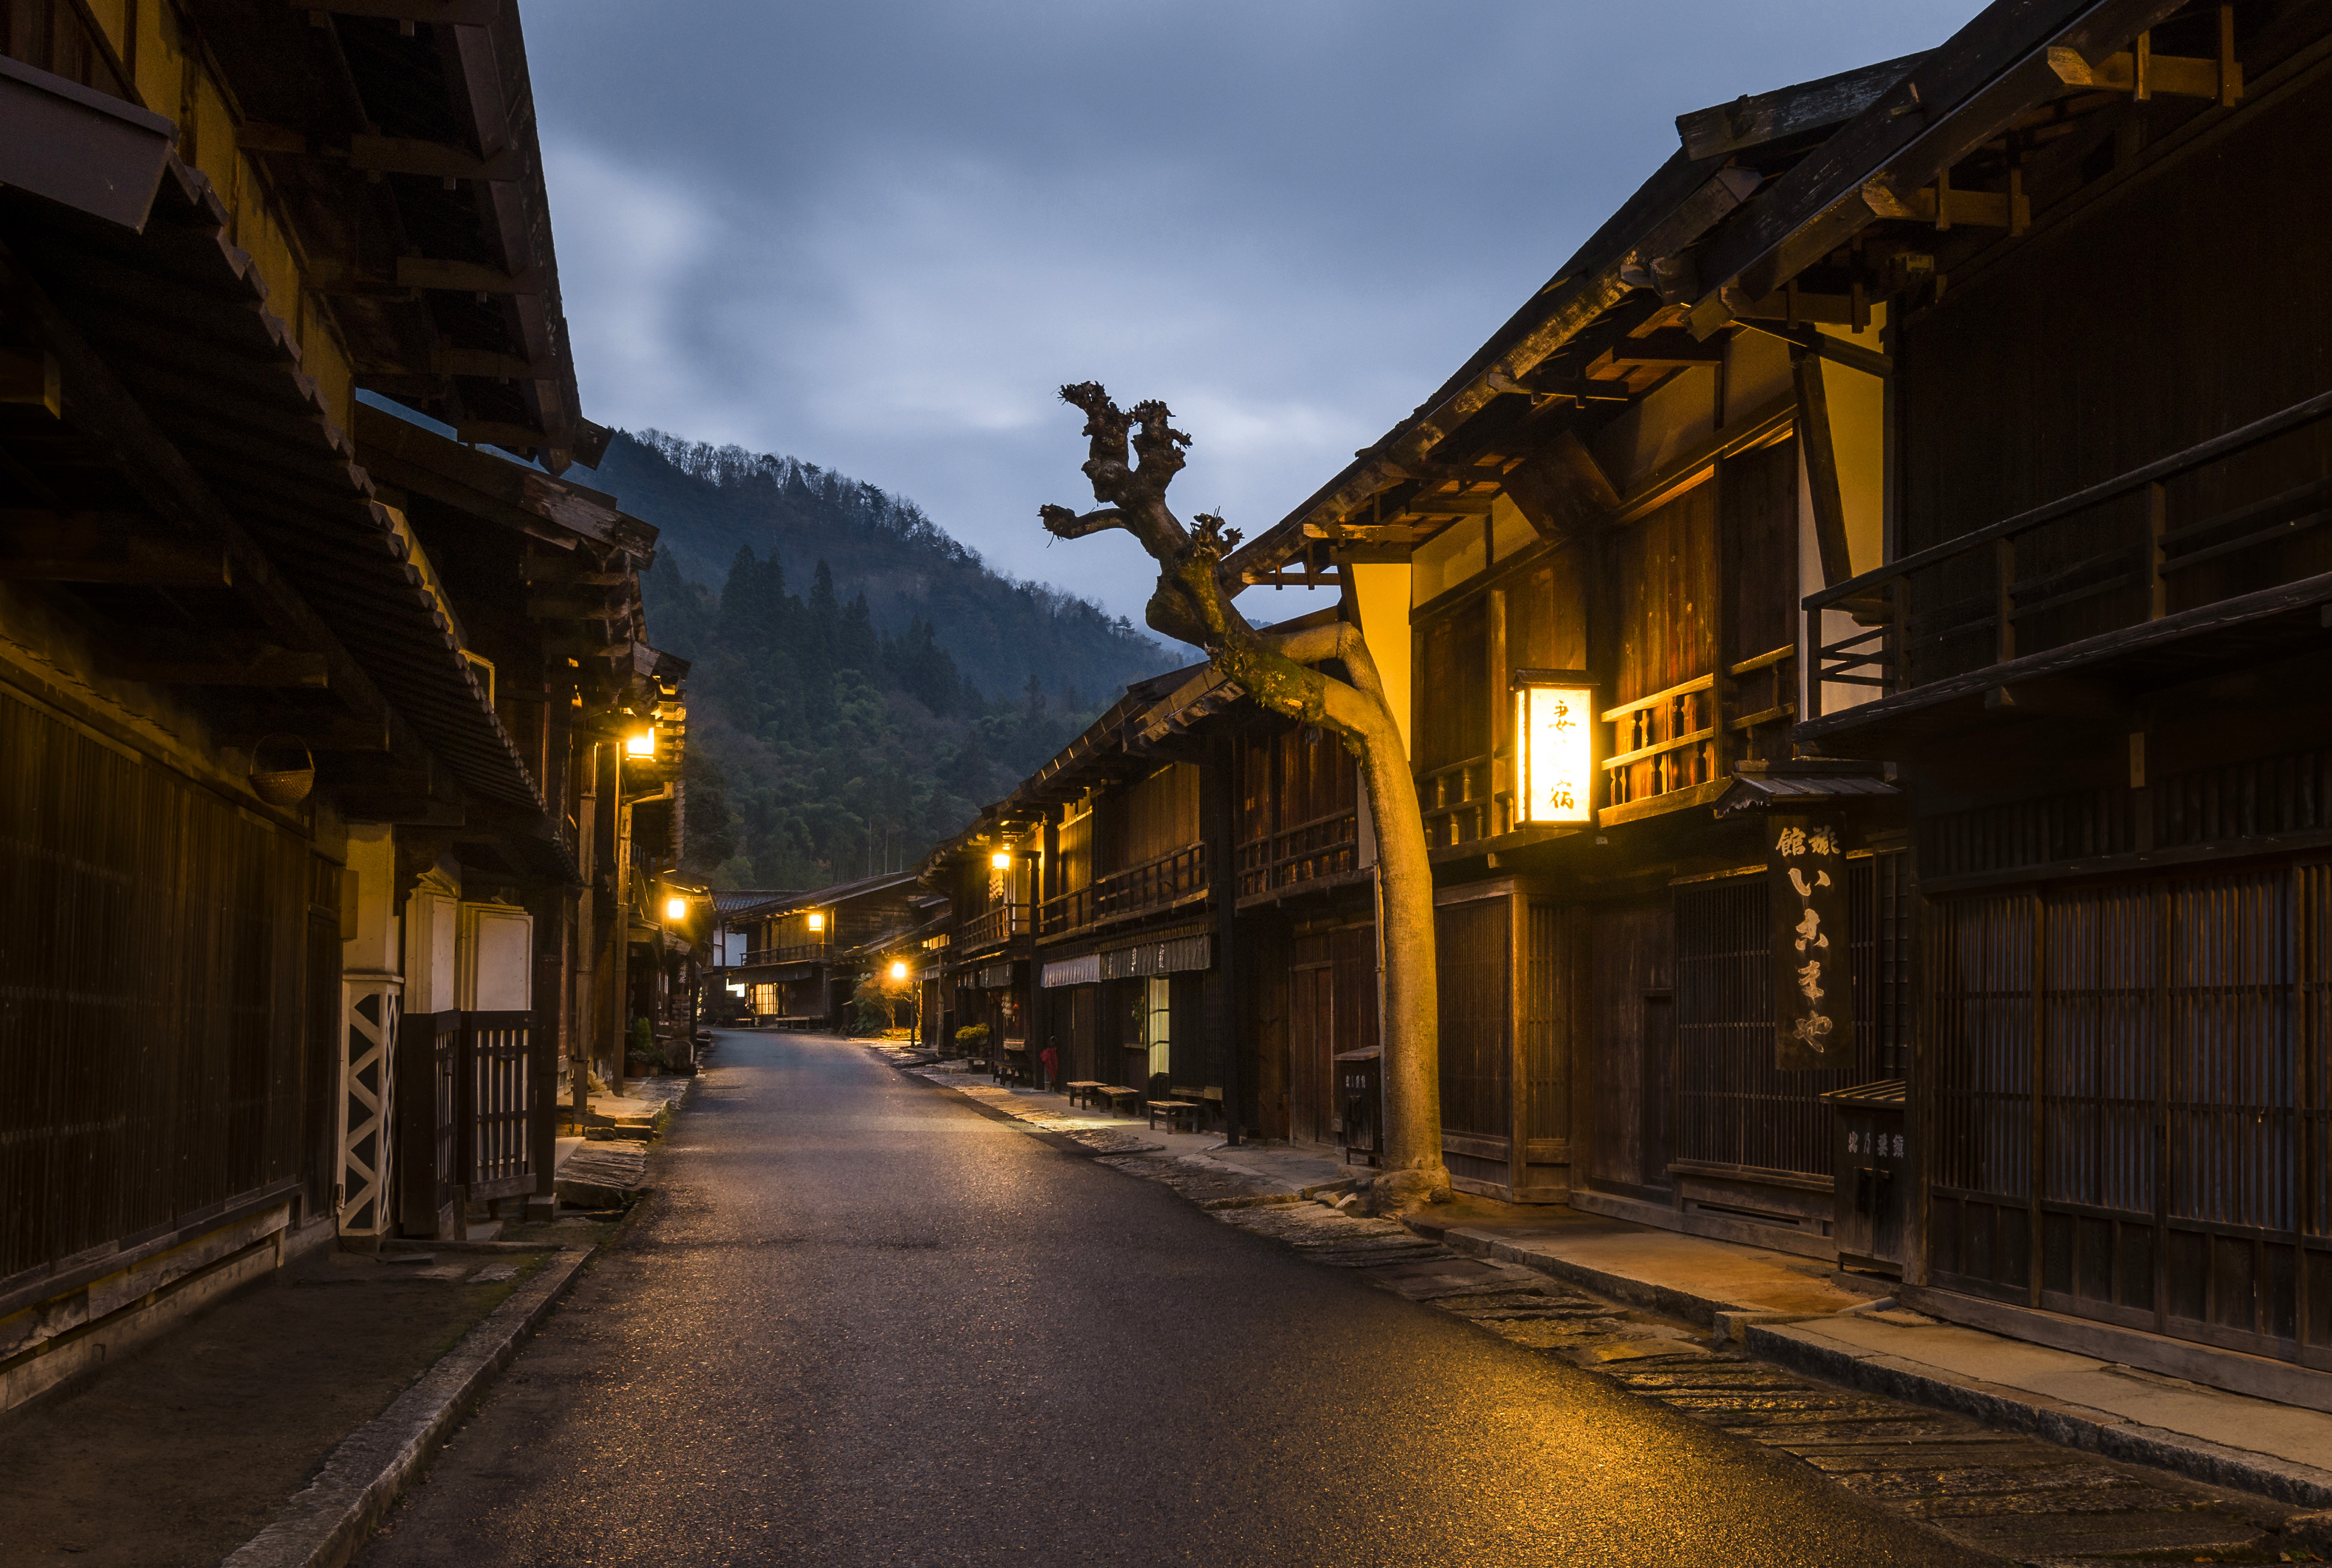 Nightfall in rural Japan: Tsumago-juku, forty-second of the sixty-nine post towns on the ancient Nakasendō trail - Explored